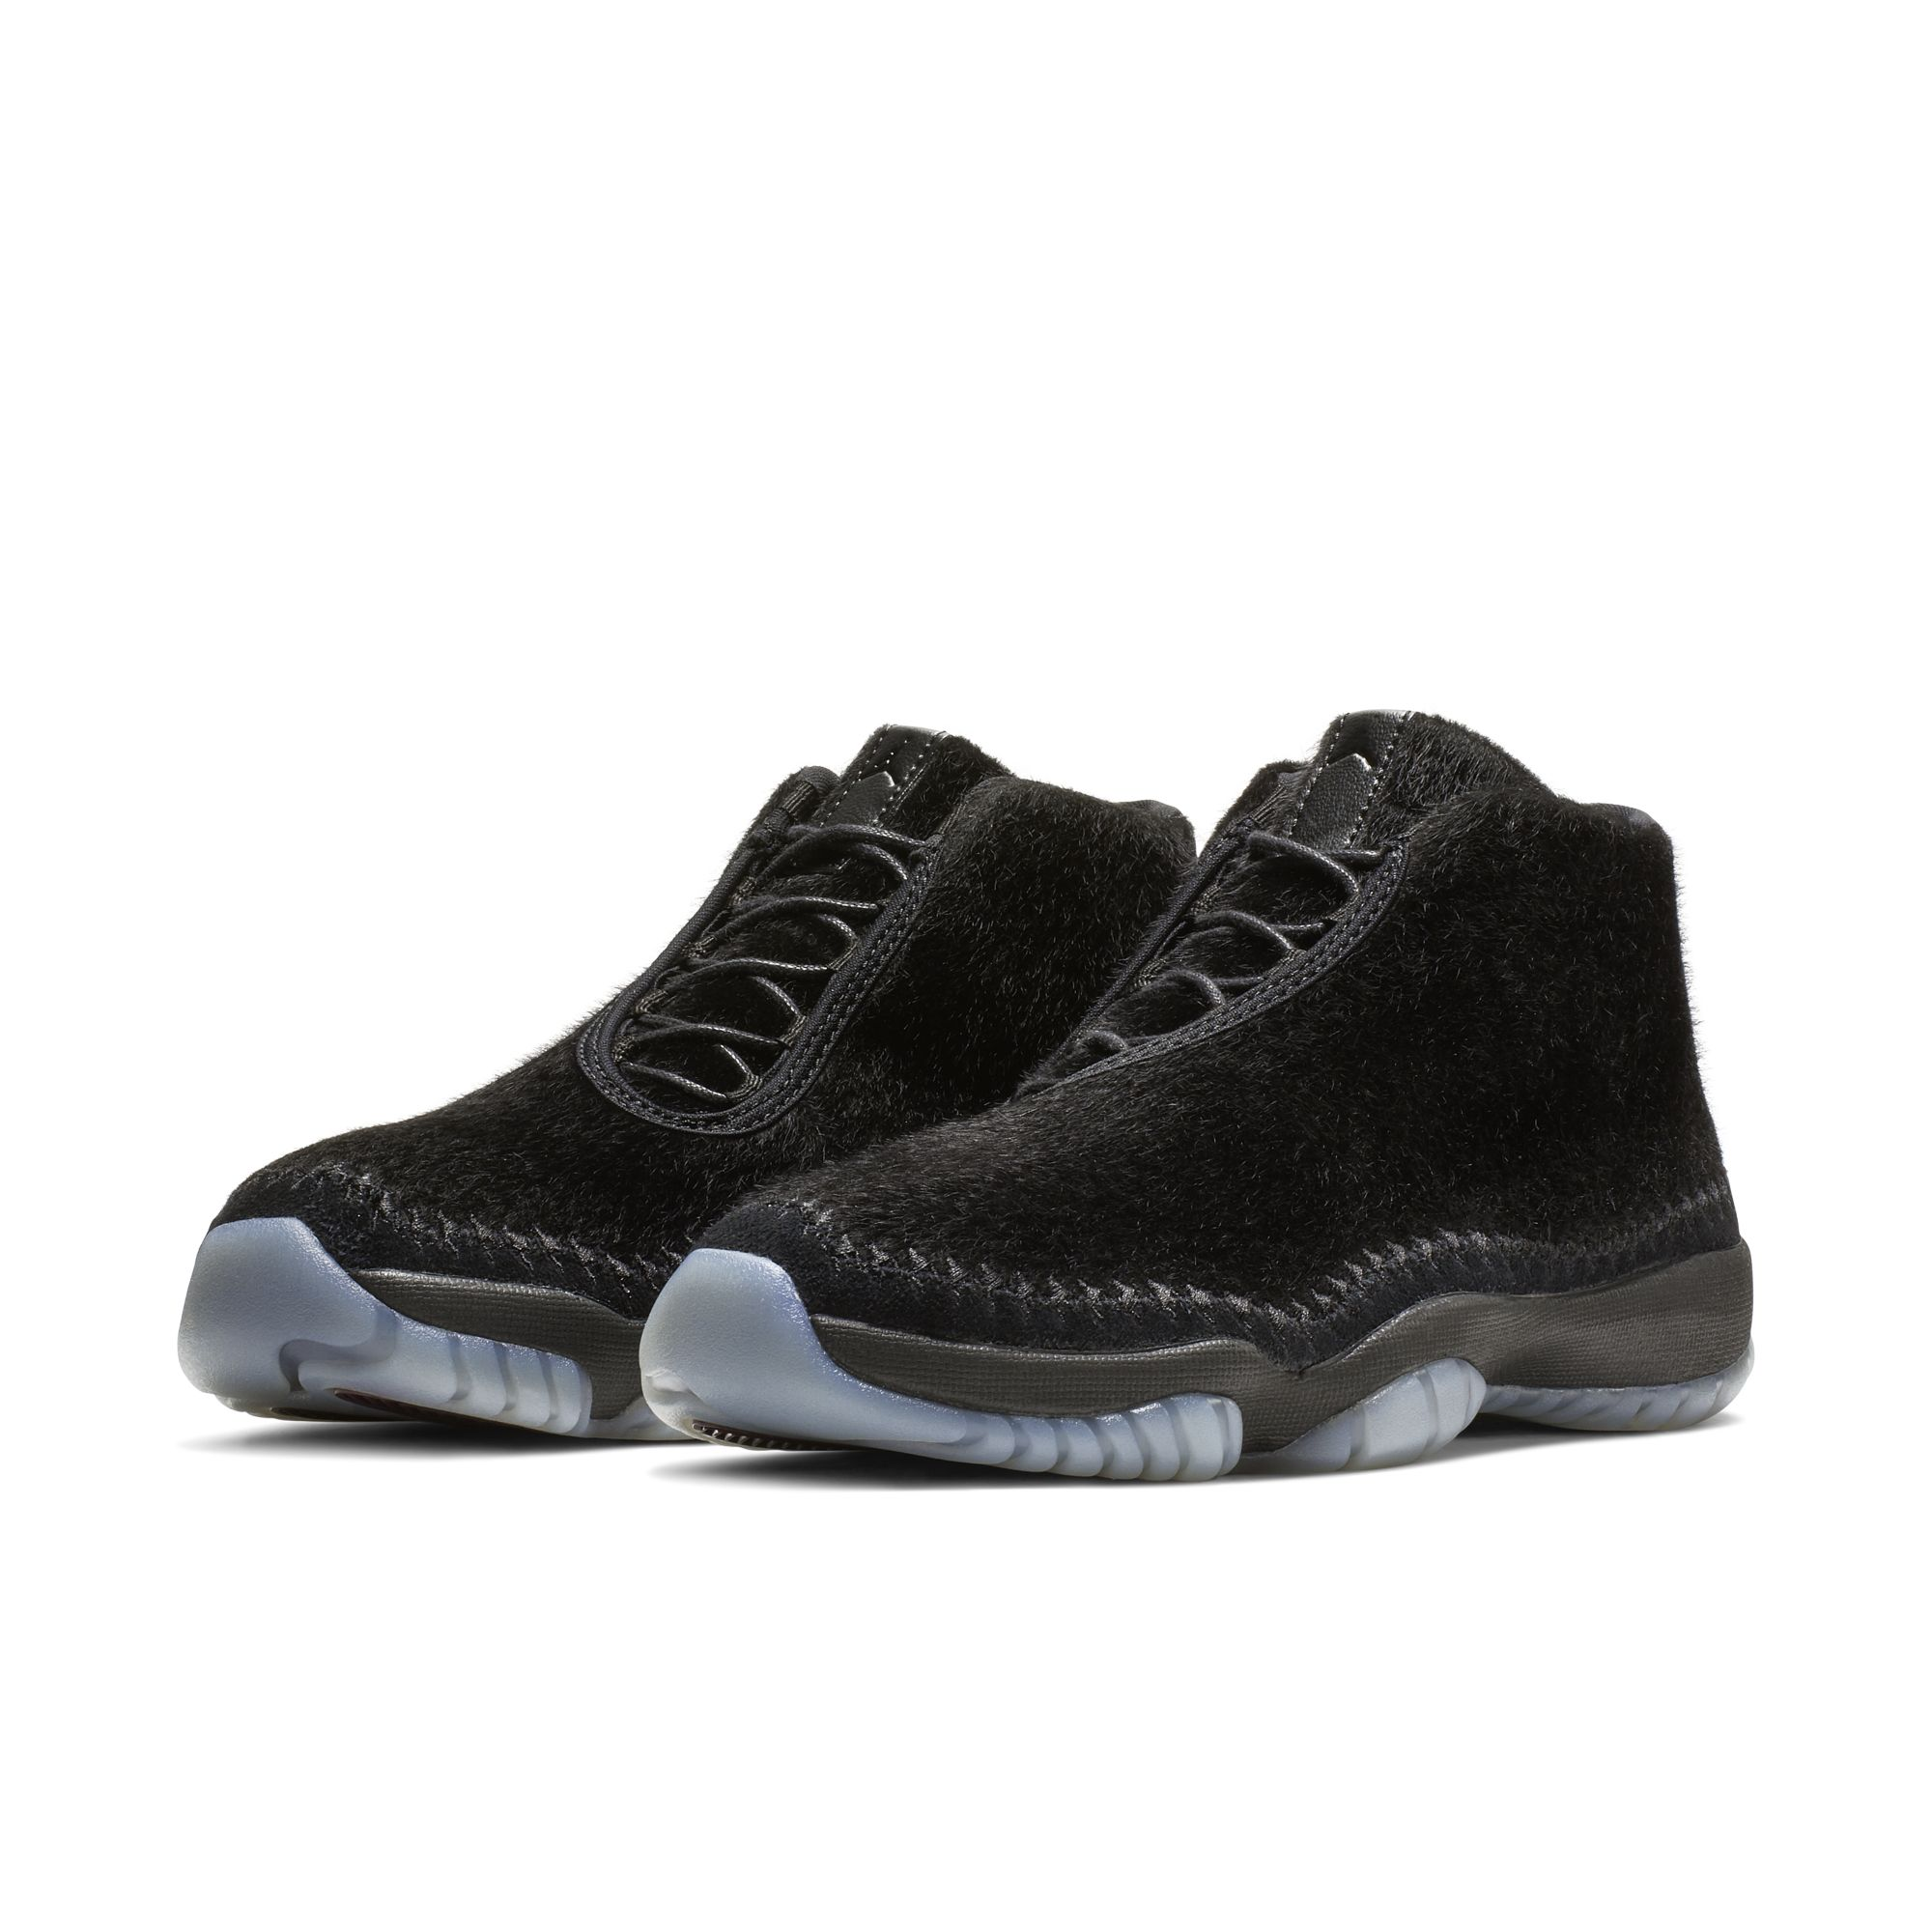 nouveau style 0d093 f79ed This Air Jordan Future Comes With New Materials - WearTesters